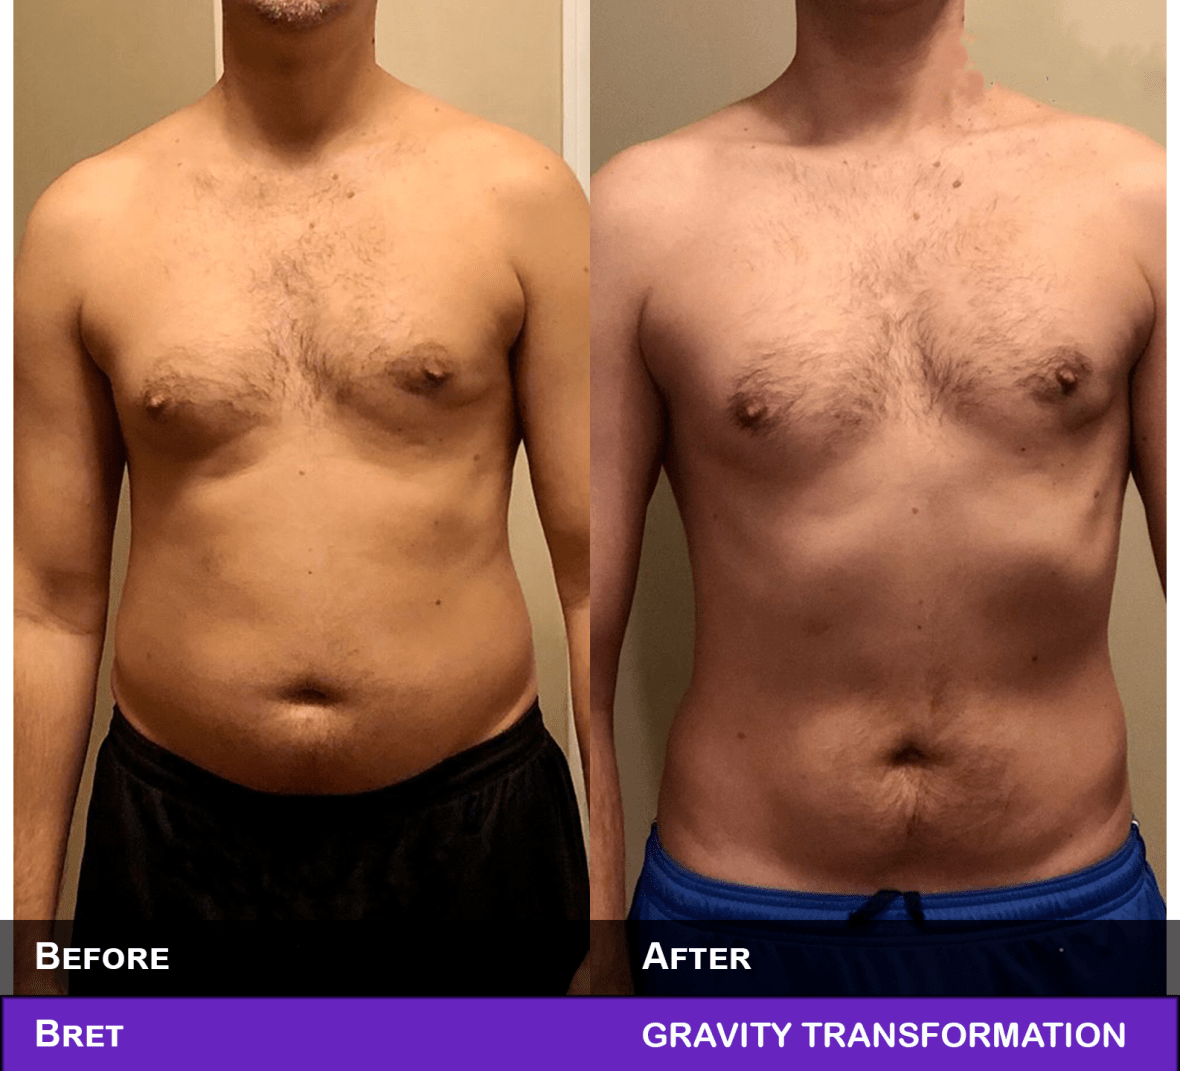 11 Steps To Lose Chest Fat FAST  Gravity Transformation